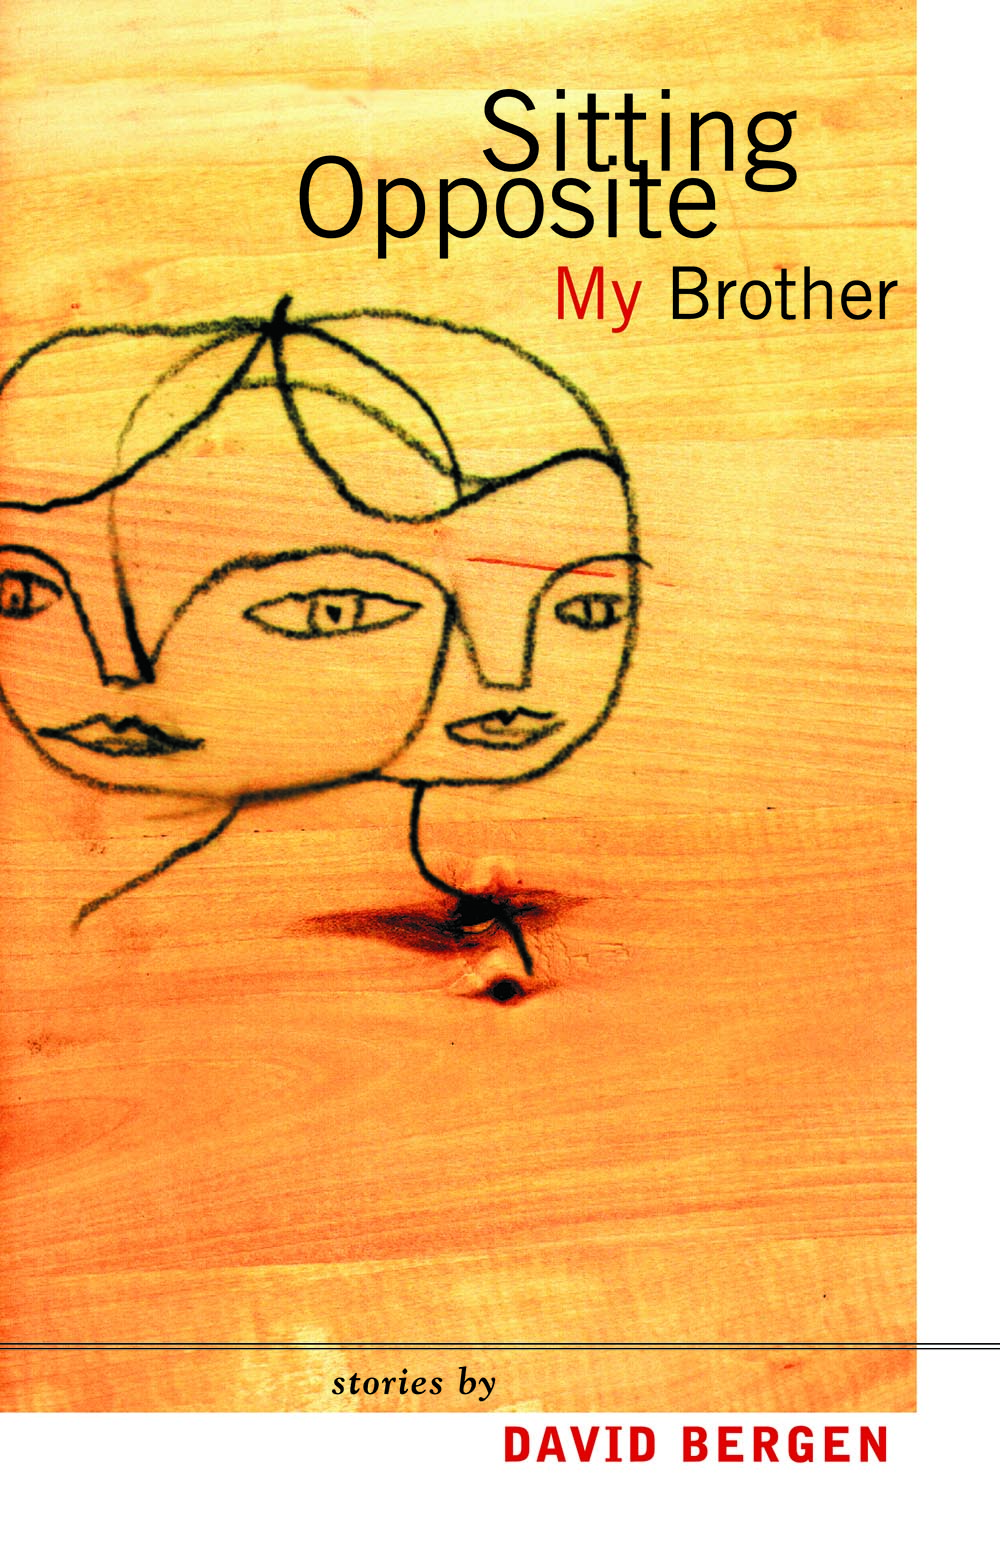 Sitting Opposite My Brother by David Bergen